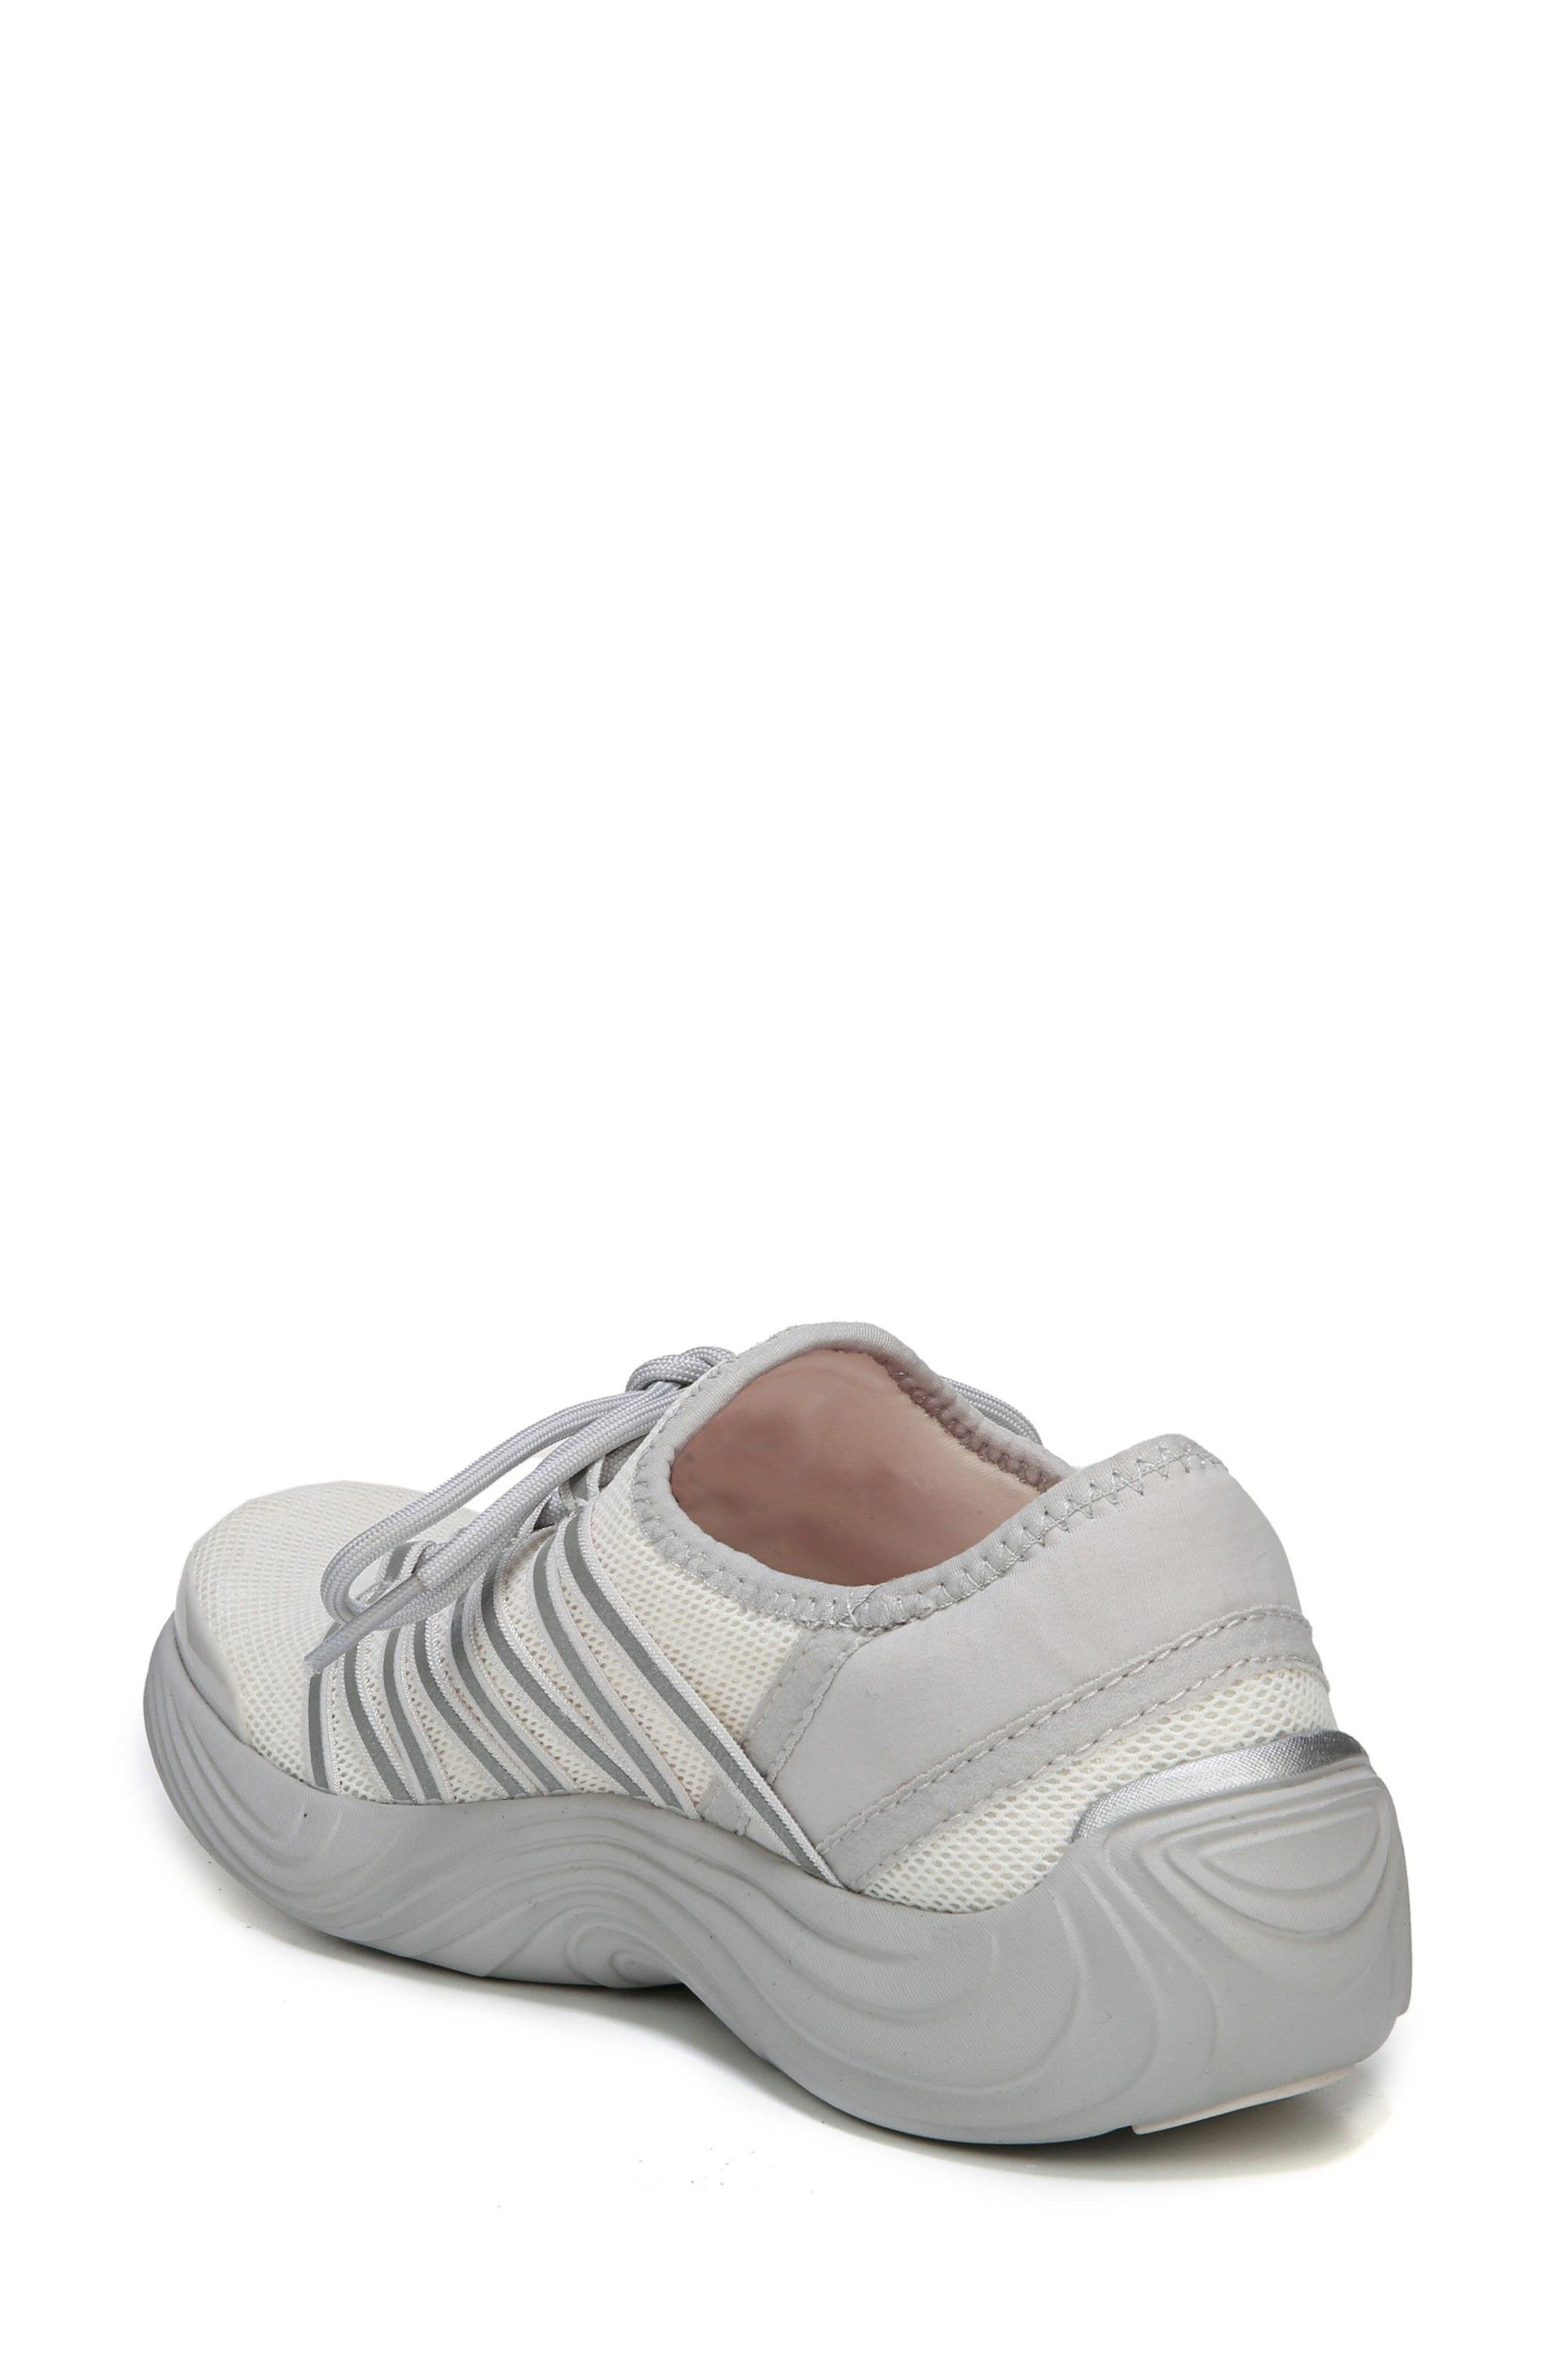 Tender Sneaker,                             Alternate thumbnail 7, color,